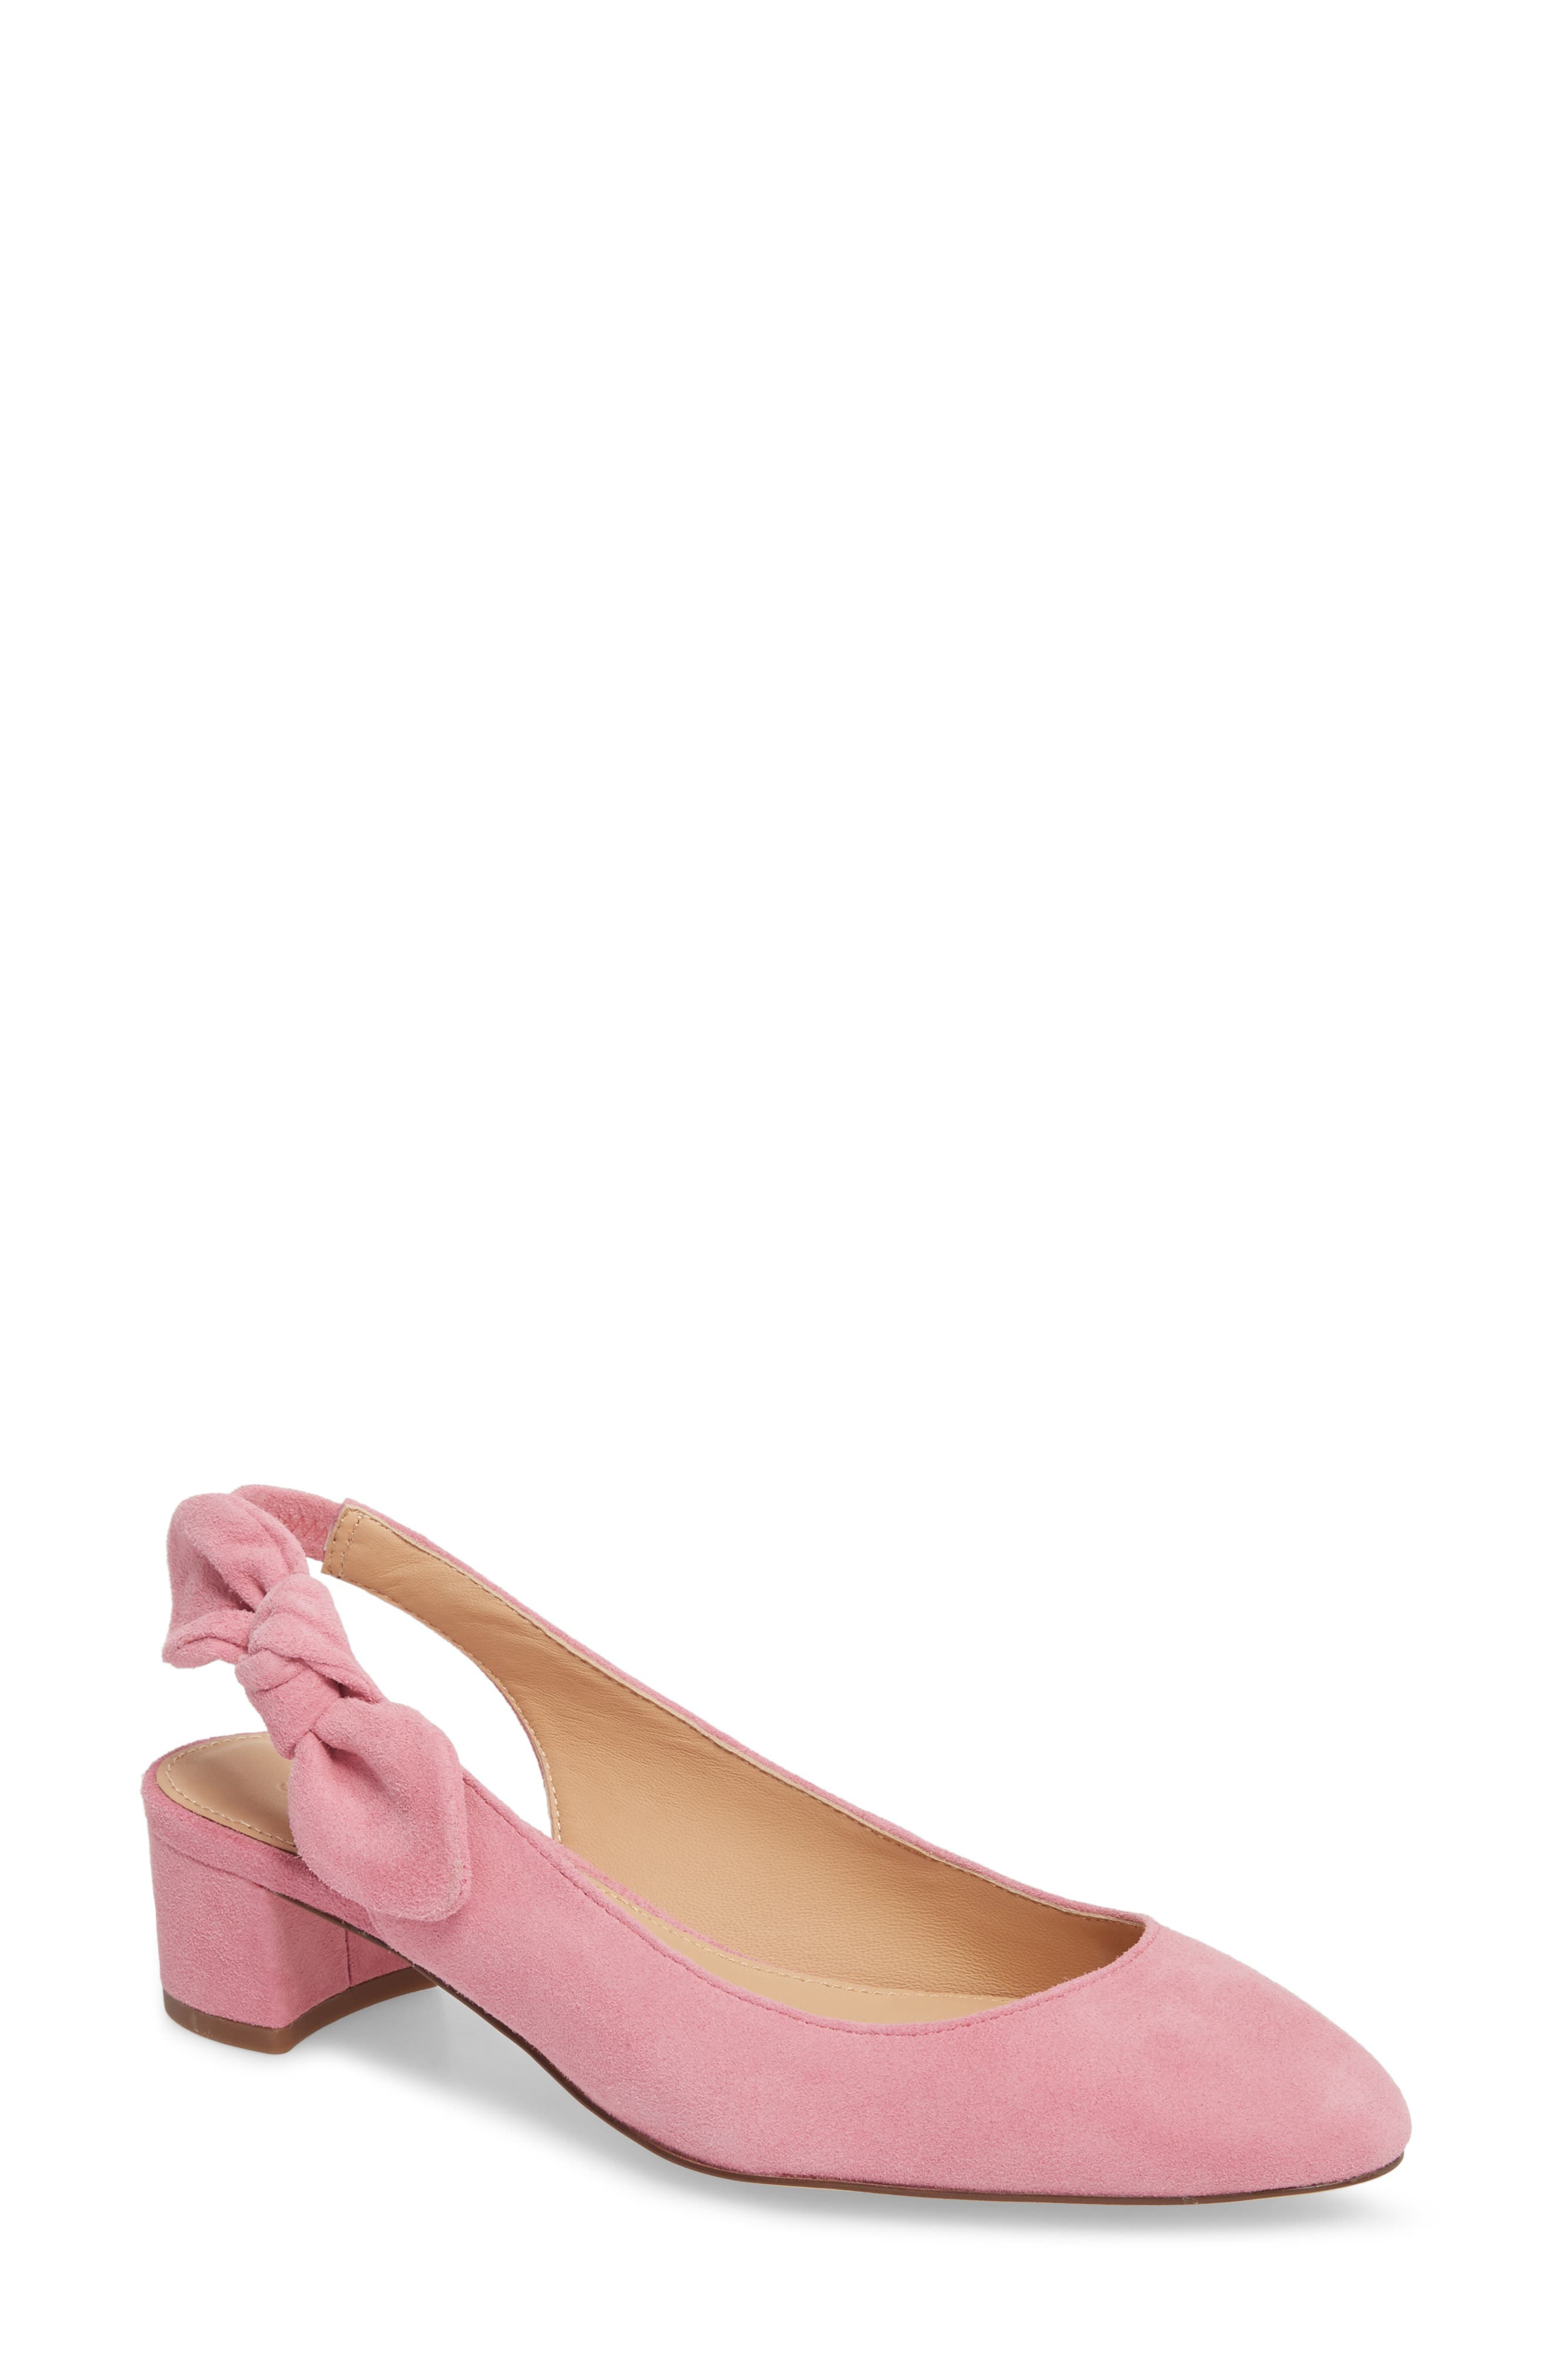 Slingback Bow Pump,                         Main,                         color, WINTER CORAL FABRIC